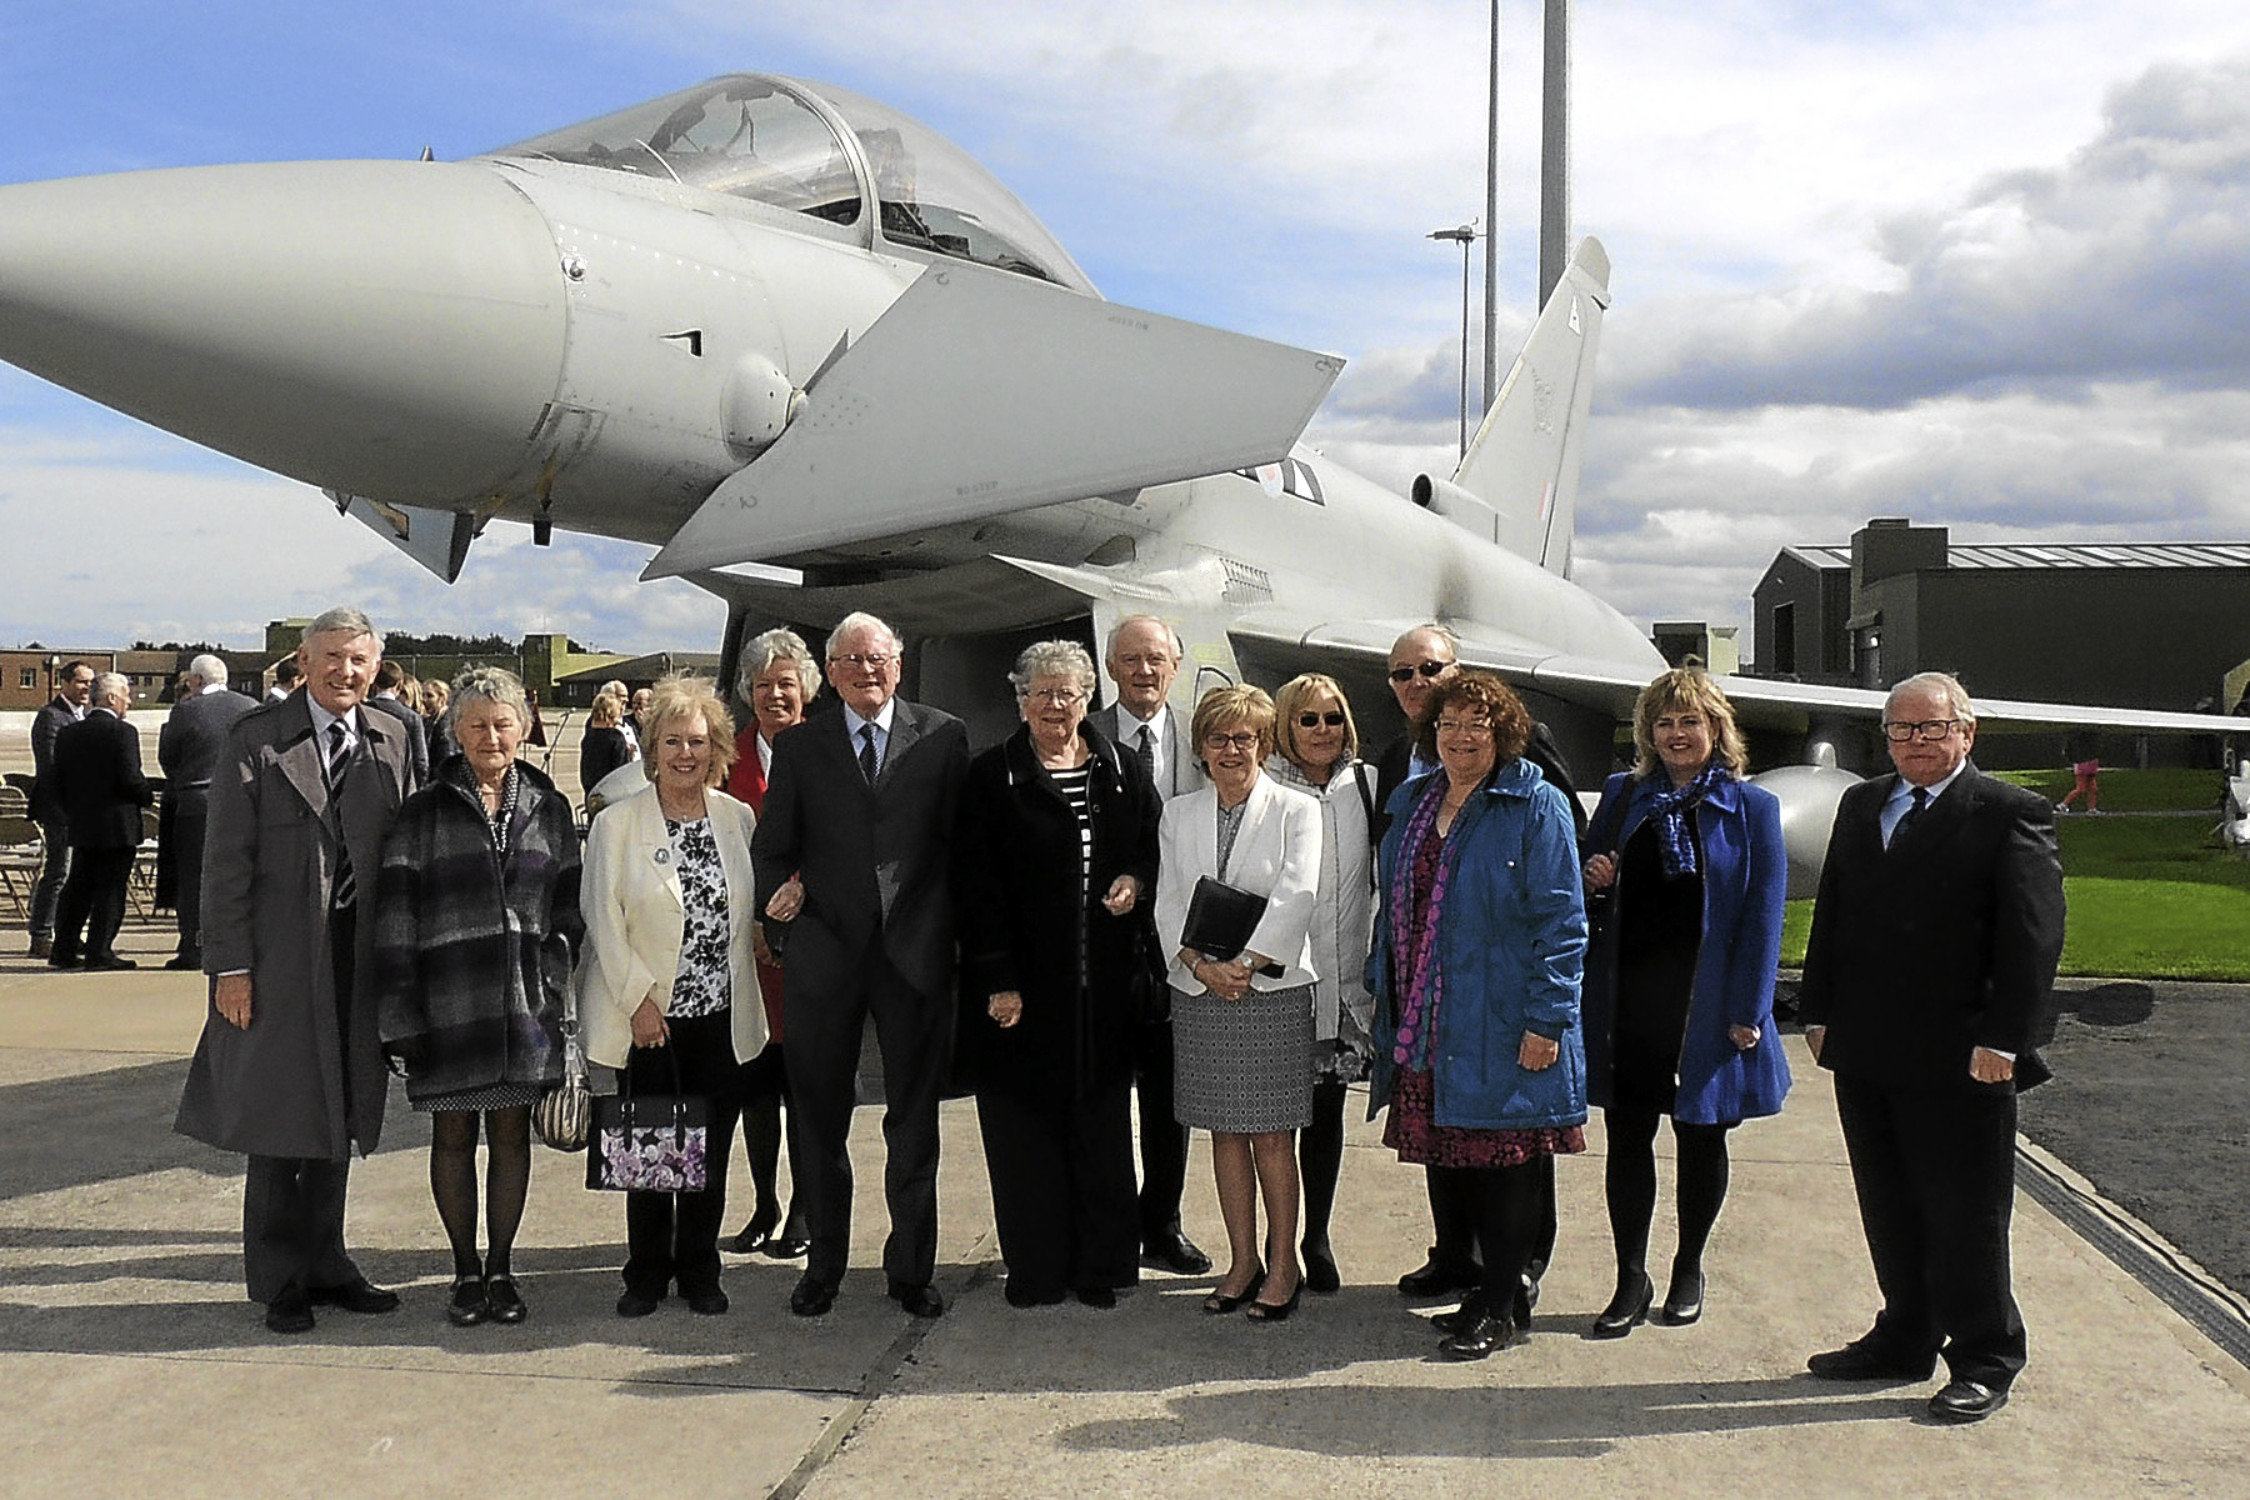 The Heritage Centre party with one of the squadron Typhoon aircraft.